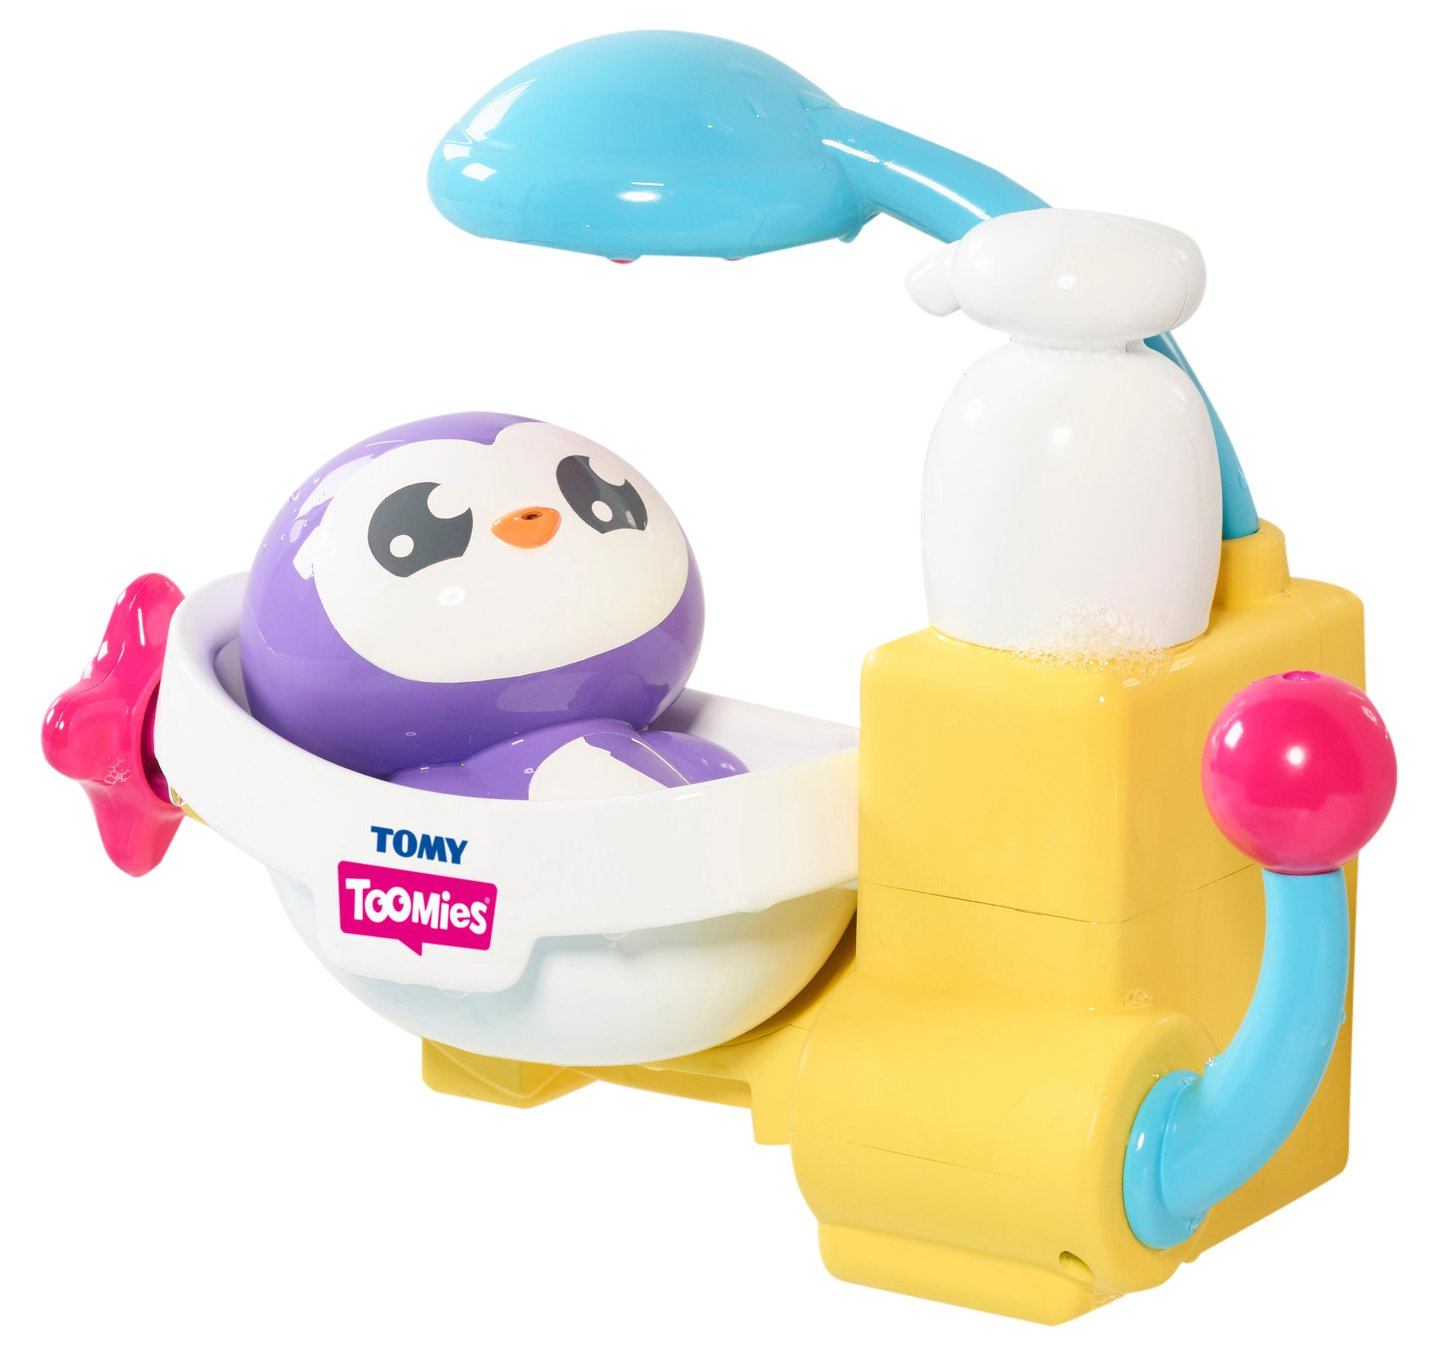 TOMY E72610C Toomies Peryn's Shower & Scrub - Penguin Bubble Bath Toy - Suitable From 18 Months